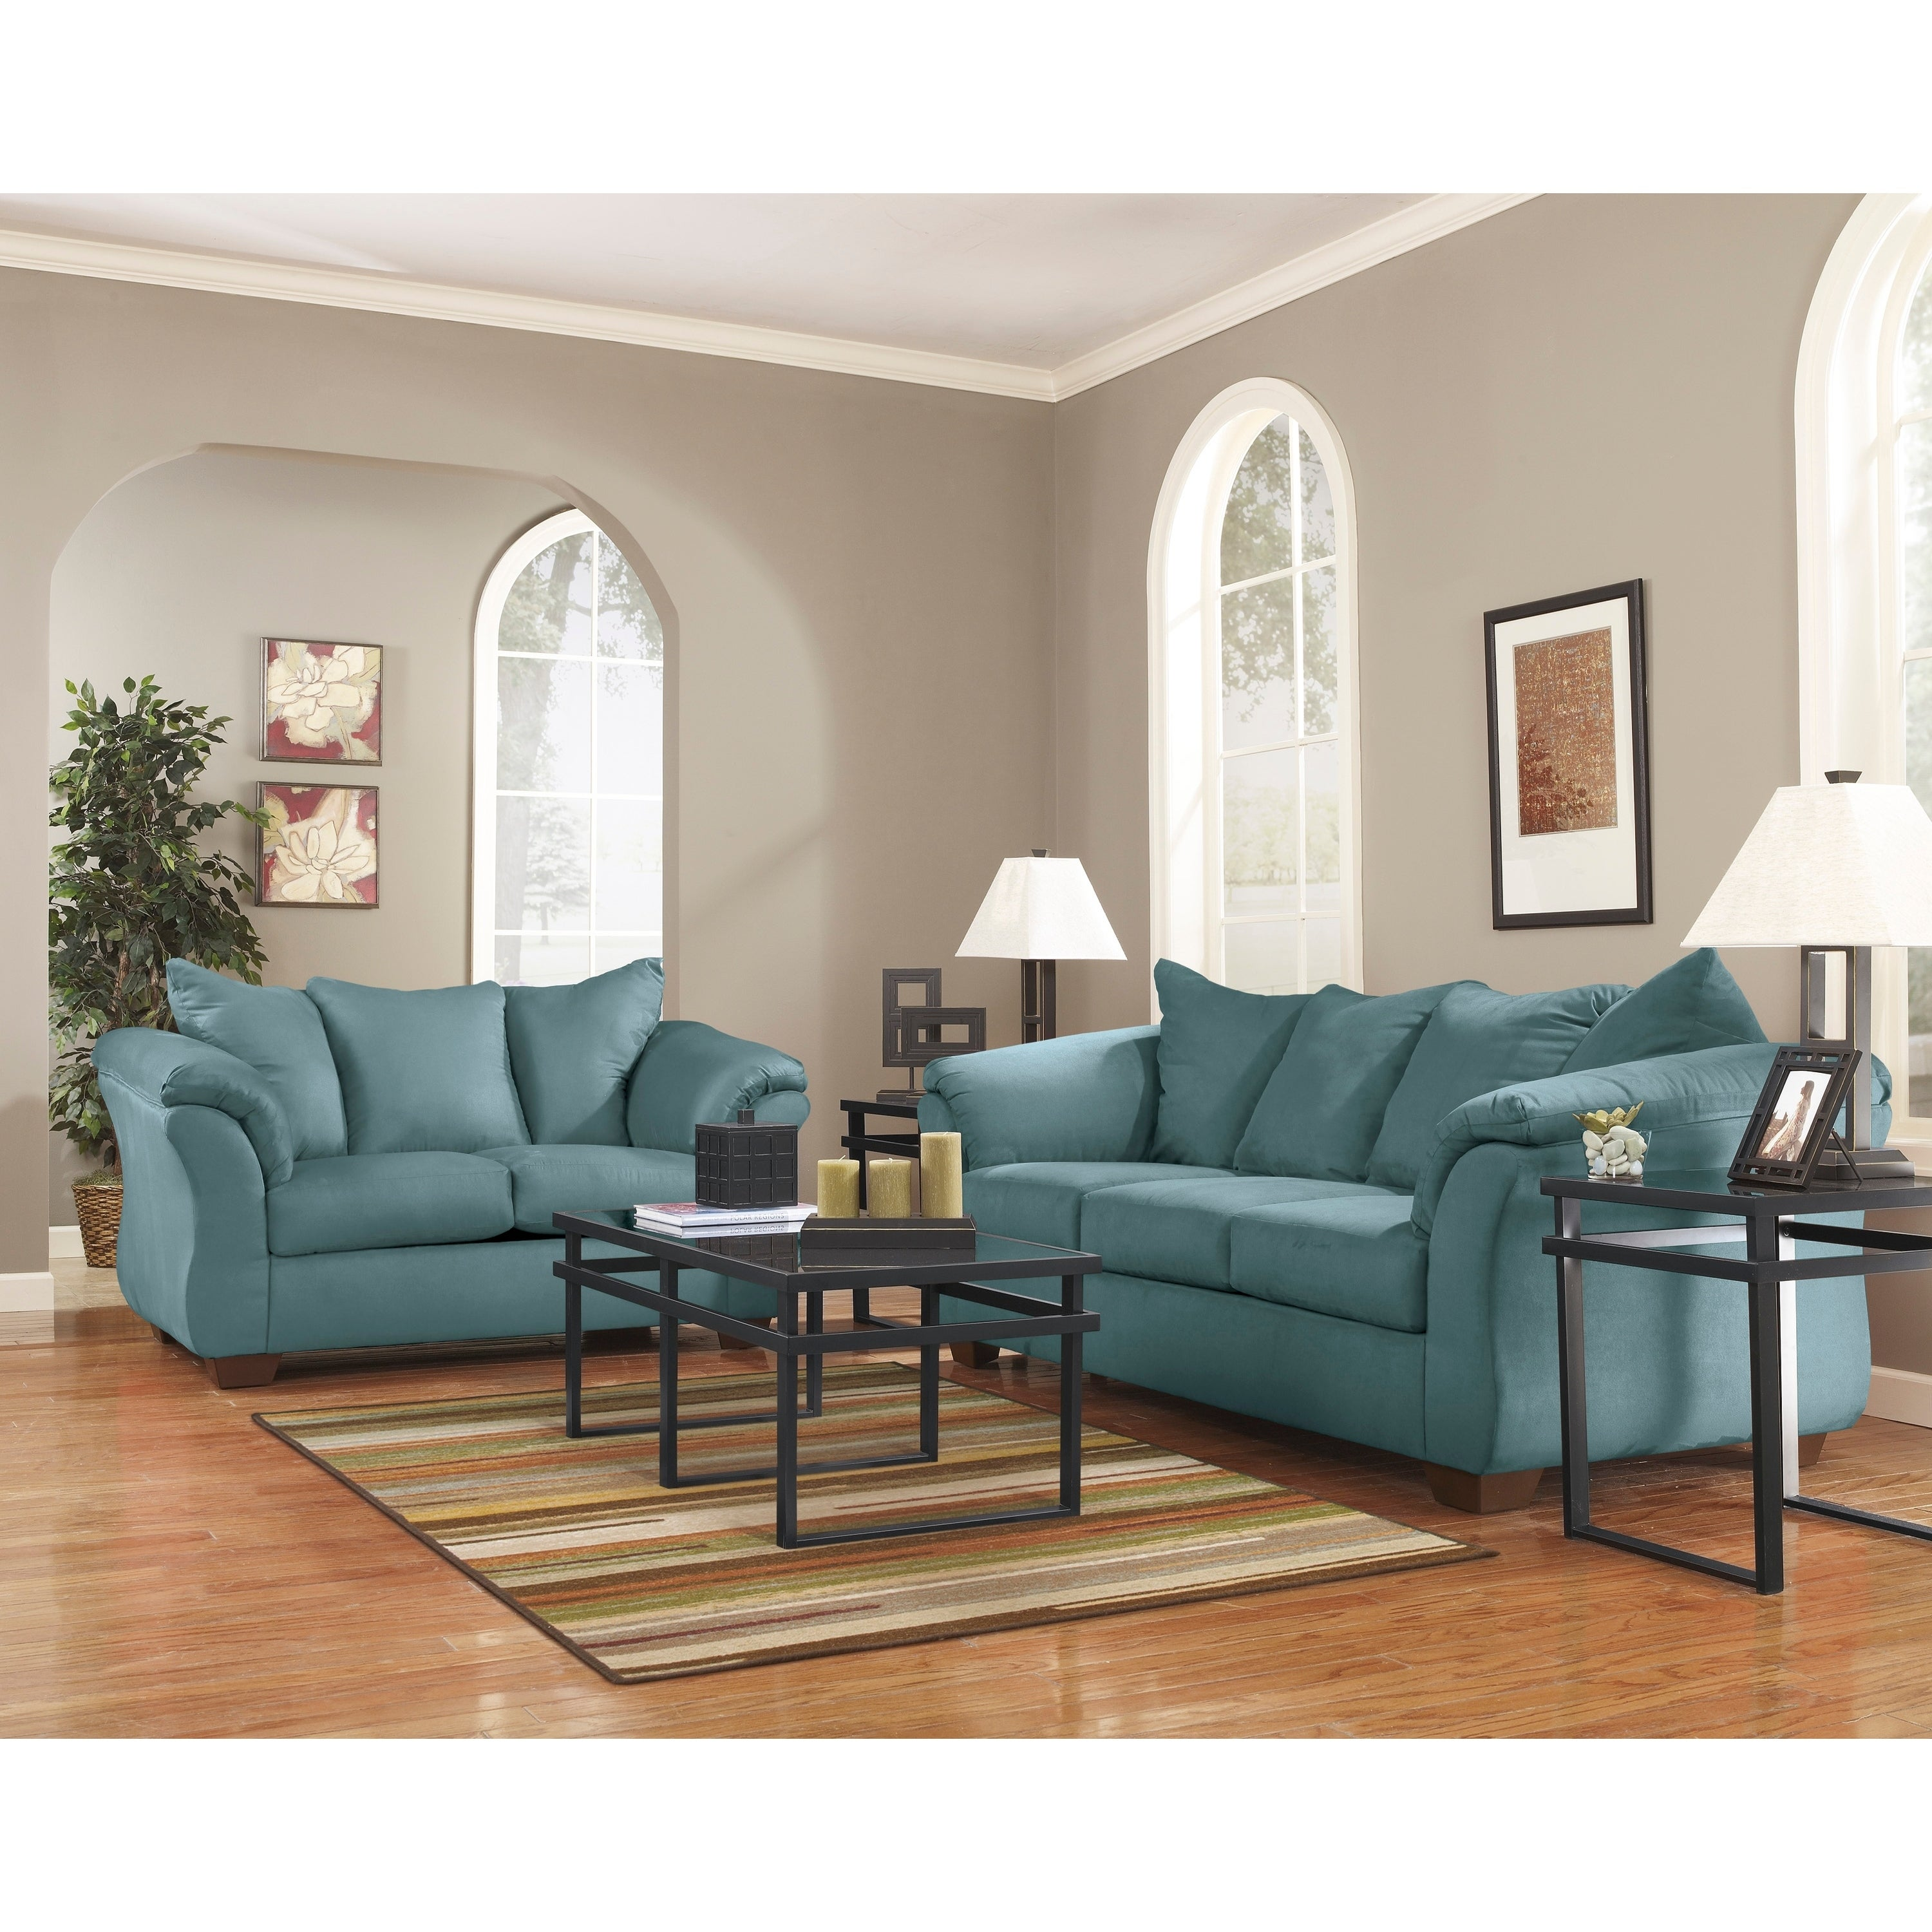 Ashley Living Room Sets.Signature Design By Ashley Darcy Living Room Set In Blue Fabric